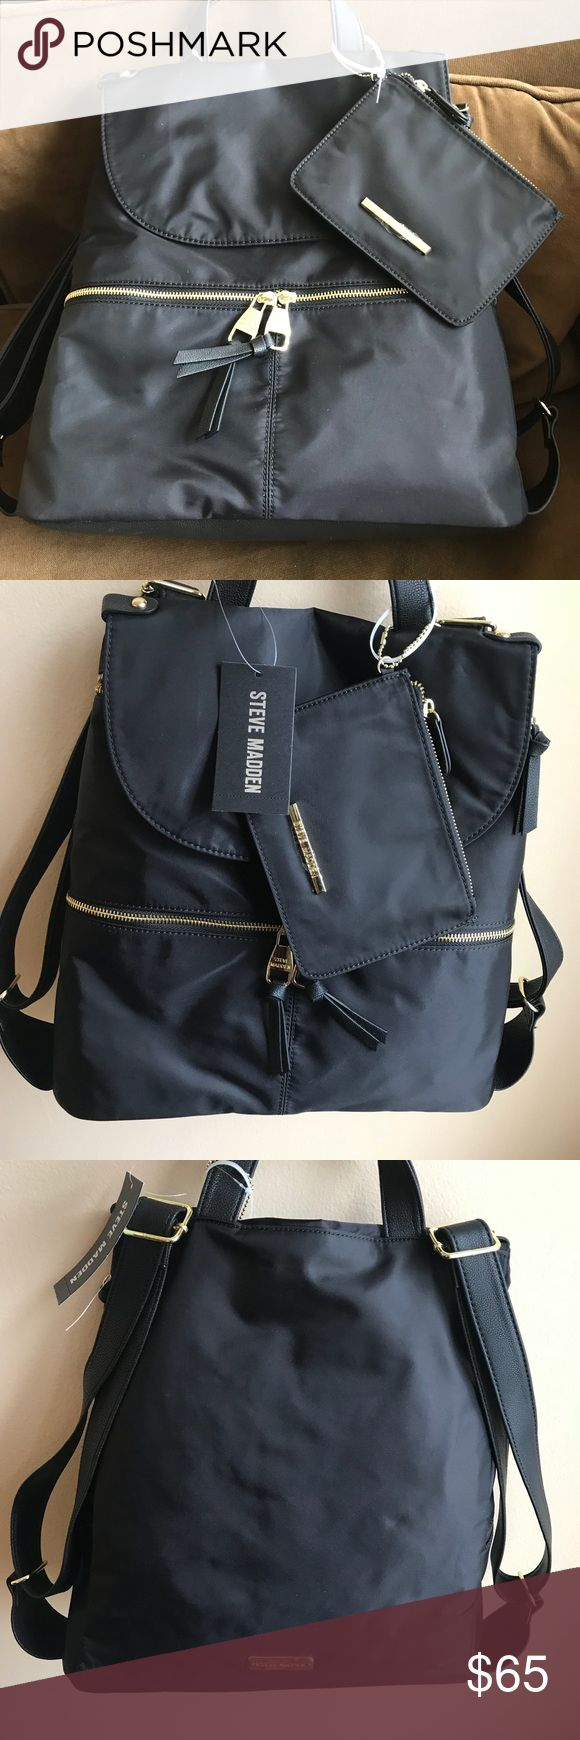 Steve Madden Black Nylon Backpack Cute backpack by Steve Madden and small pouch functional pocket in the front.  Inside has lot of room with one zip pocket and 2 slip pockets. Backpack has a flap with snap closure but inside there is also a a zipper closure . Steve Madden Bags Backpacks